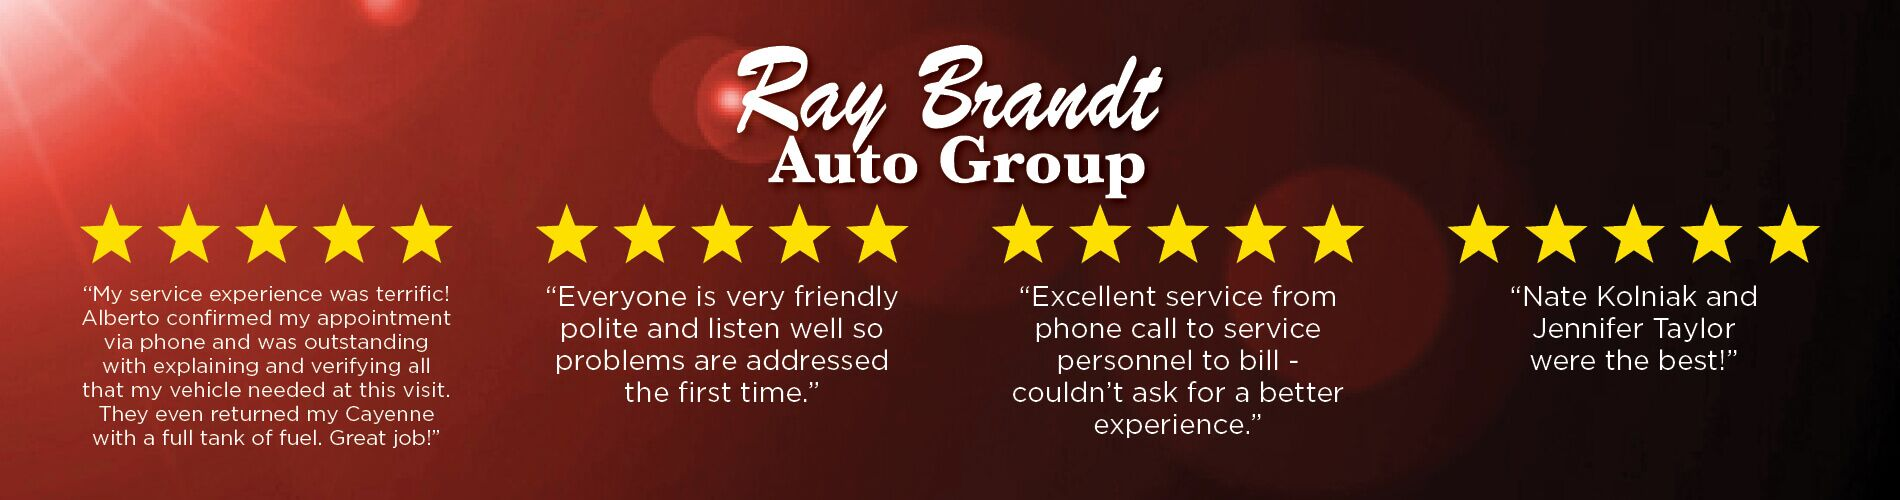 Ray Brandt Reviews